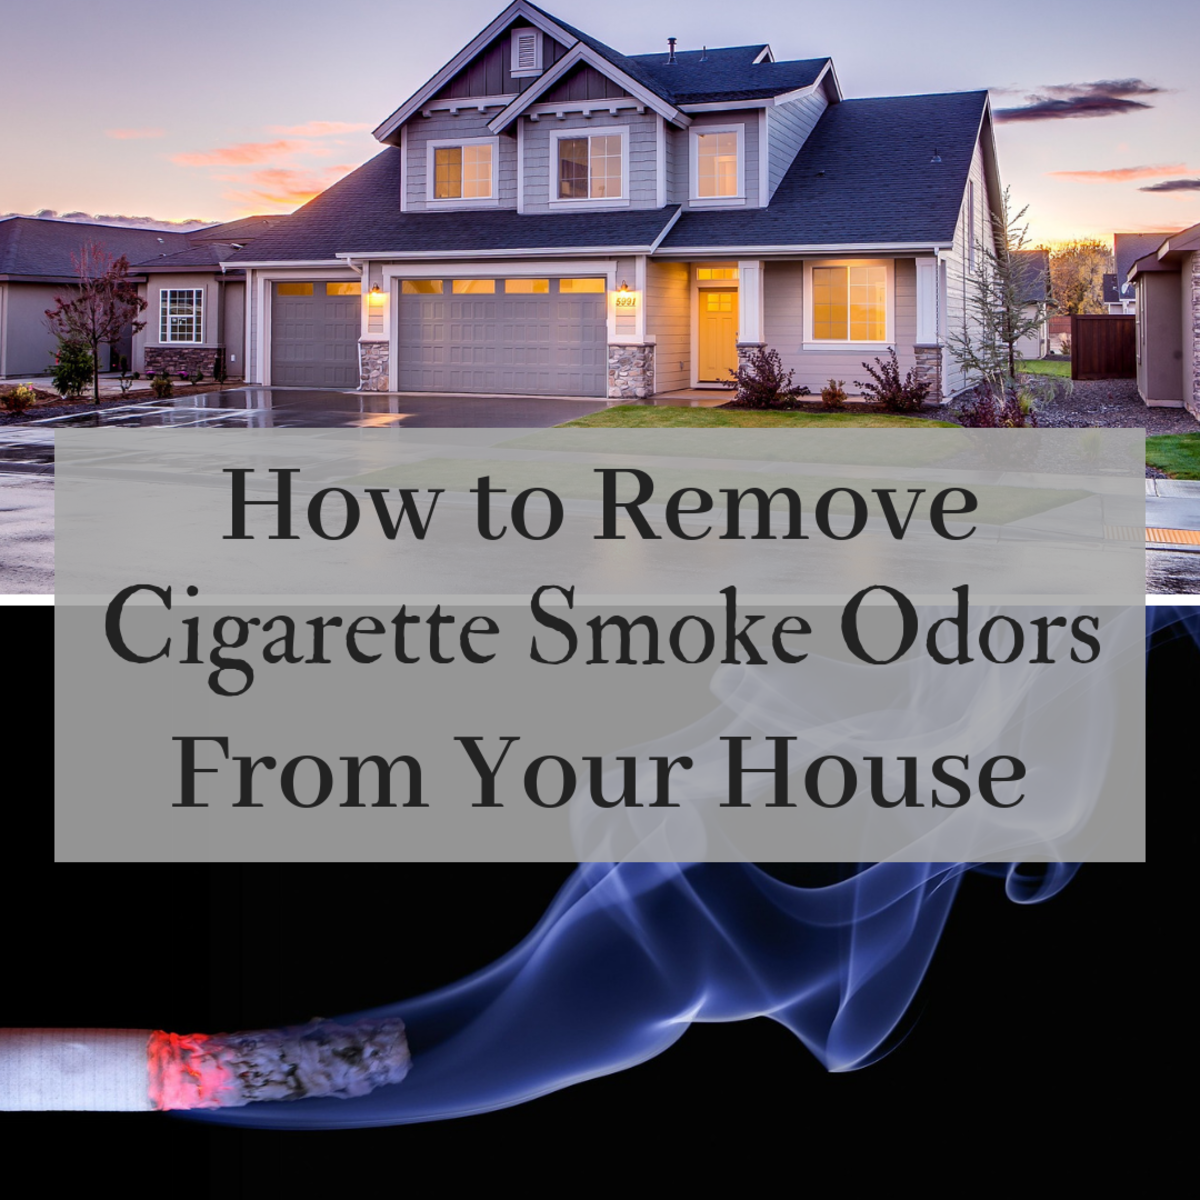 How to Get the Cigarette Smoke Smell Out of Your House: A Step-by